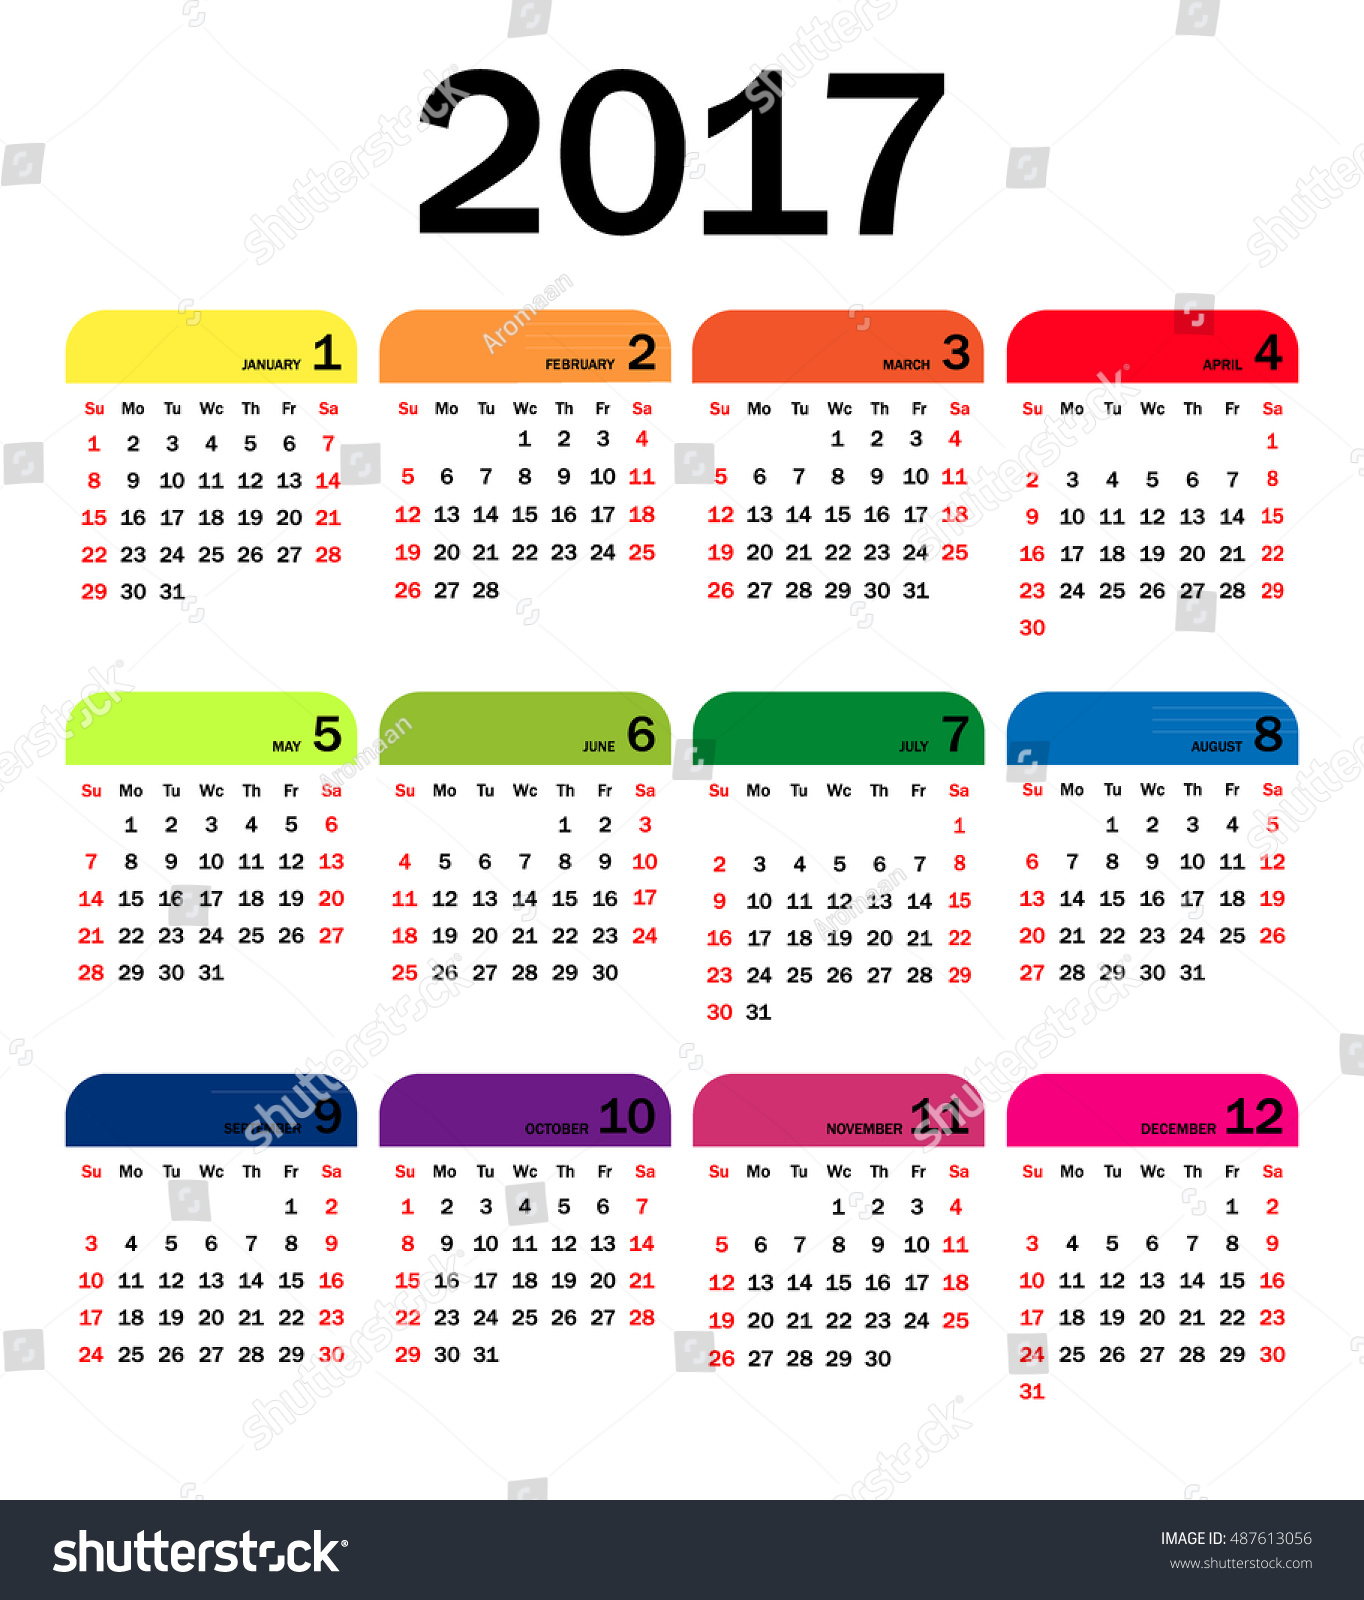 Horizontal Calendar Design : Horizontal calendar for on white background stock